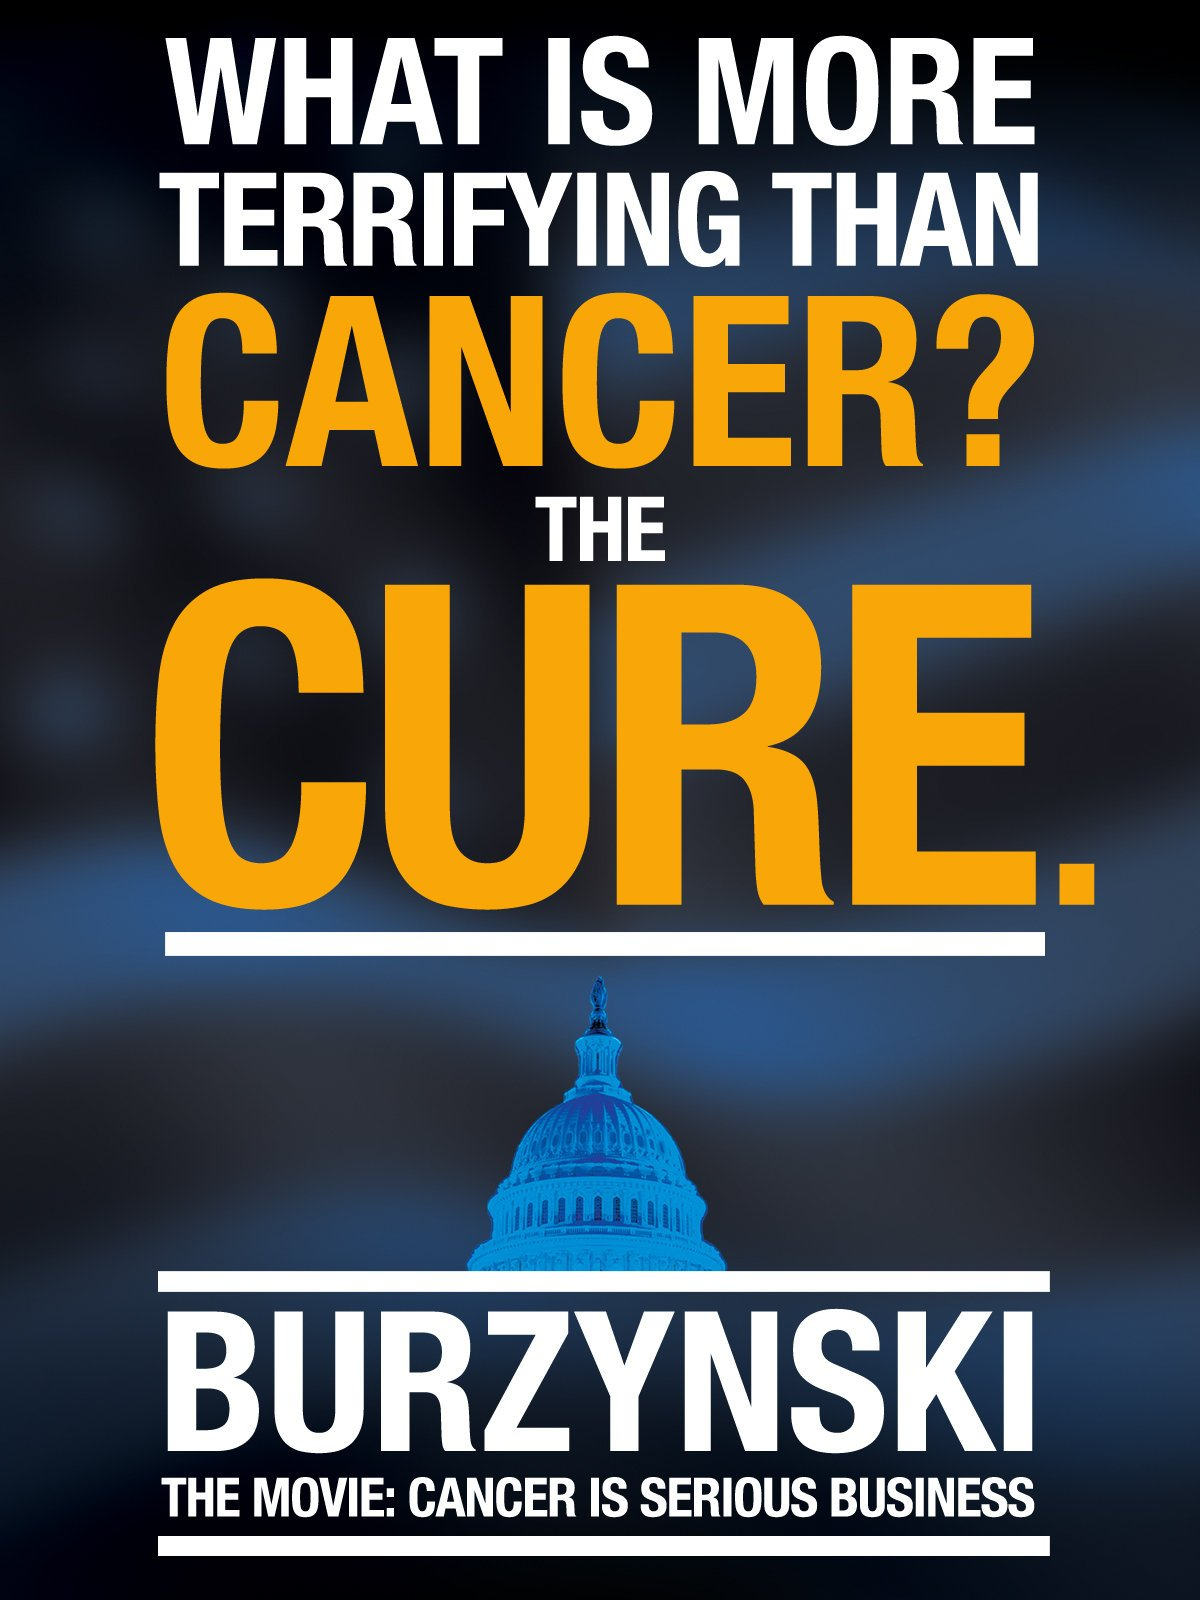 Burzynski, the Movie - Cancer Is Serious Business